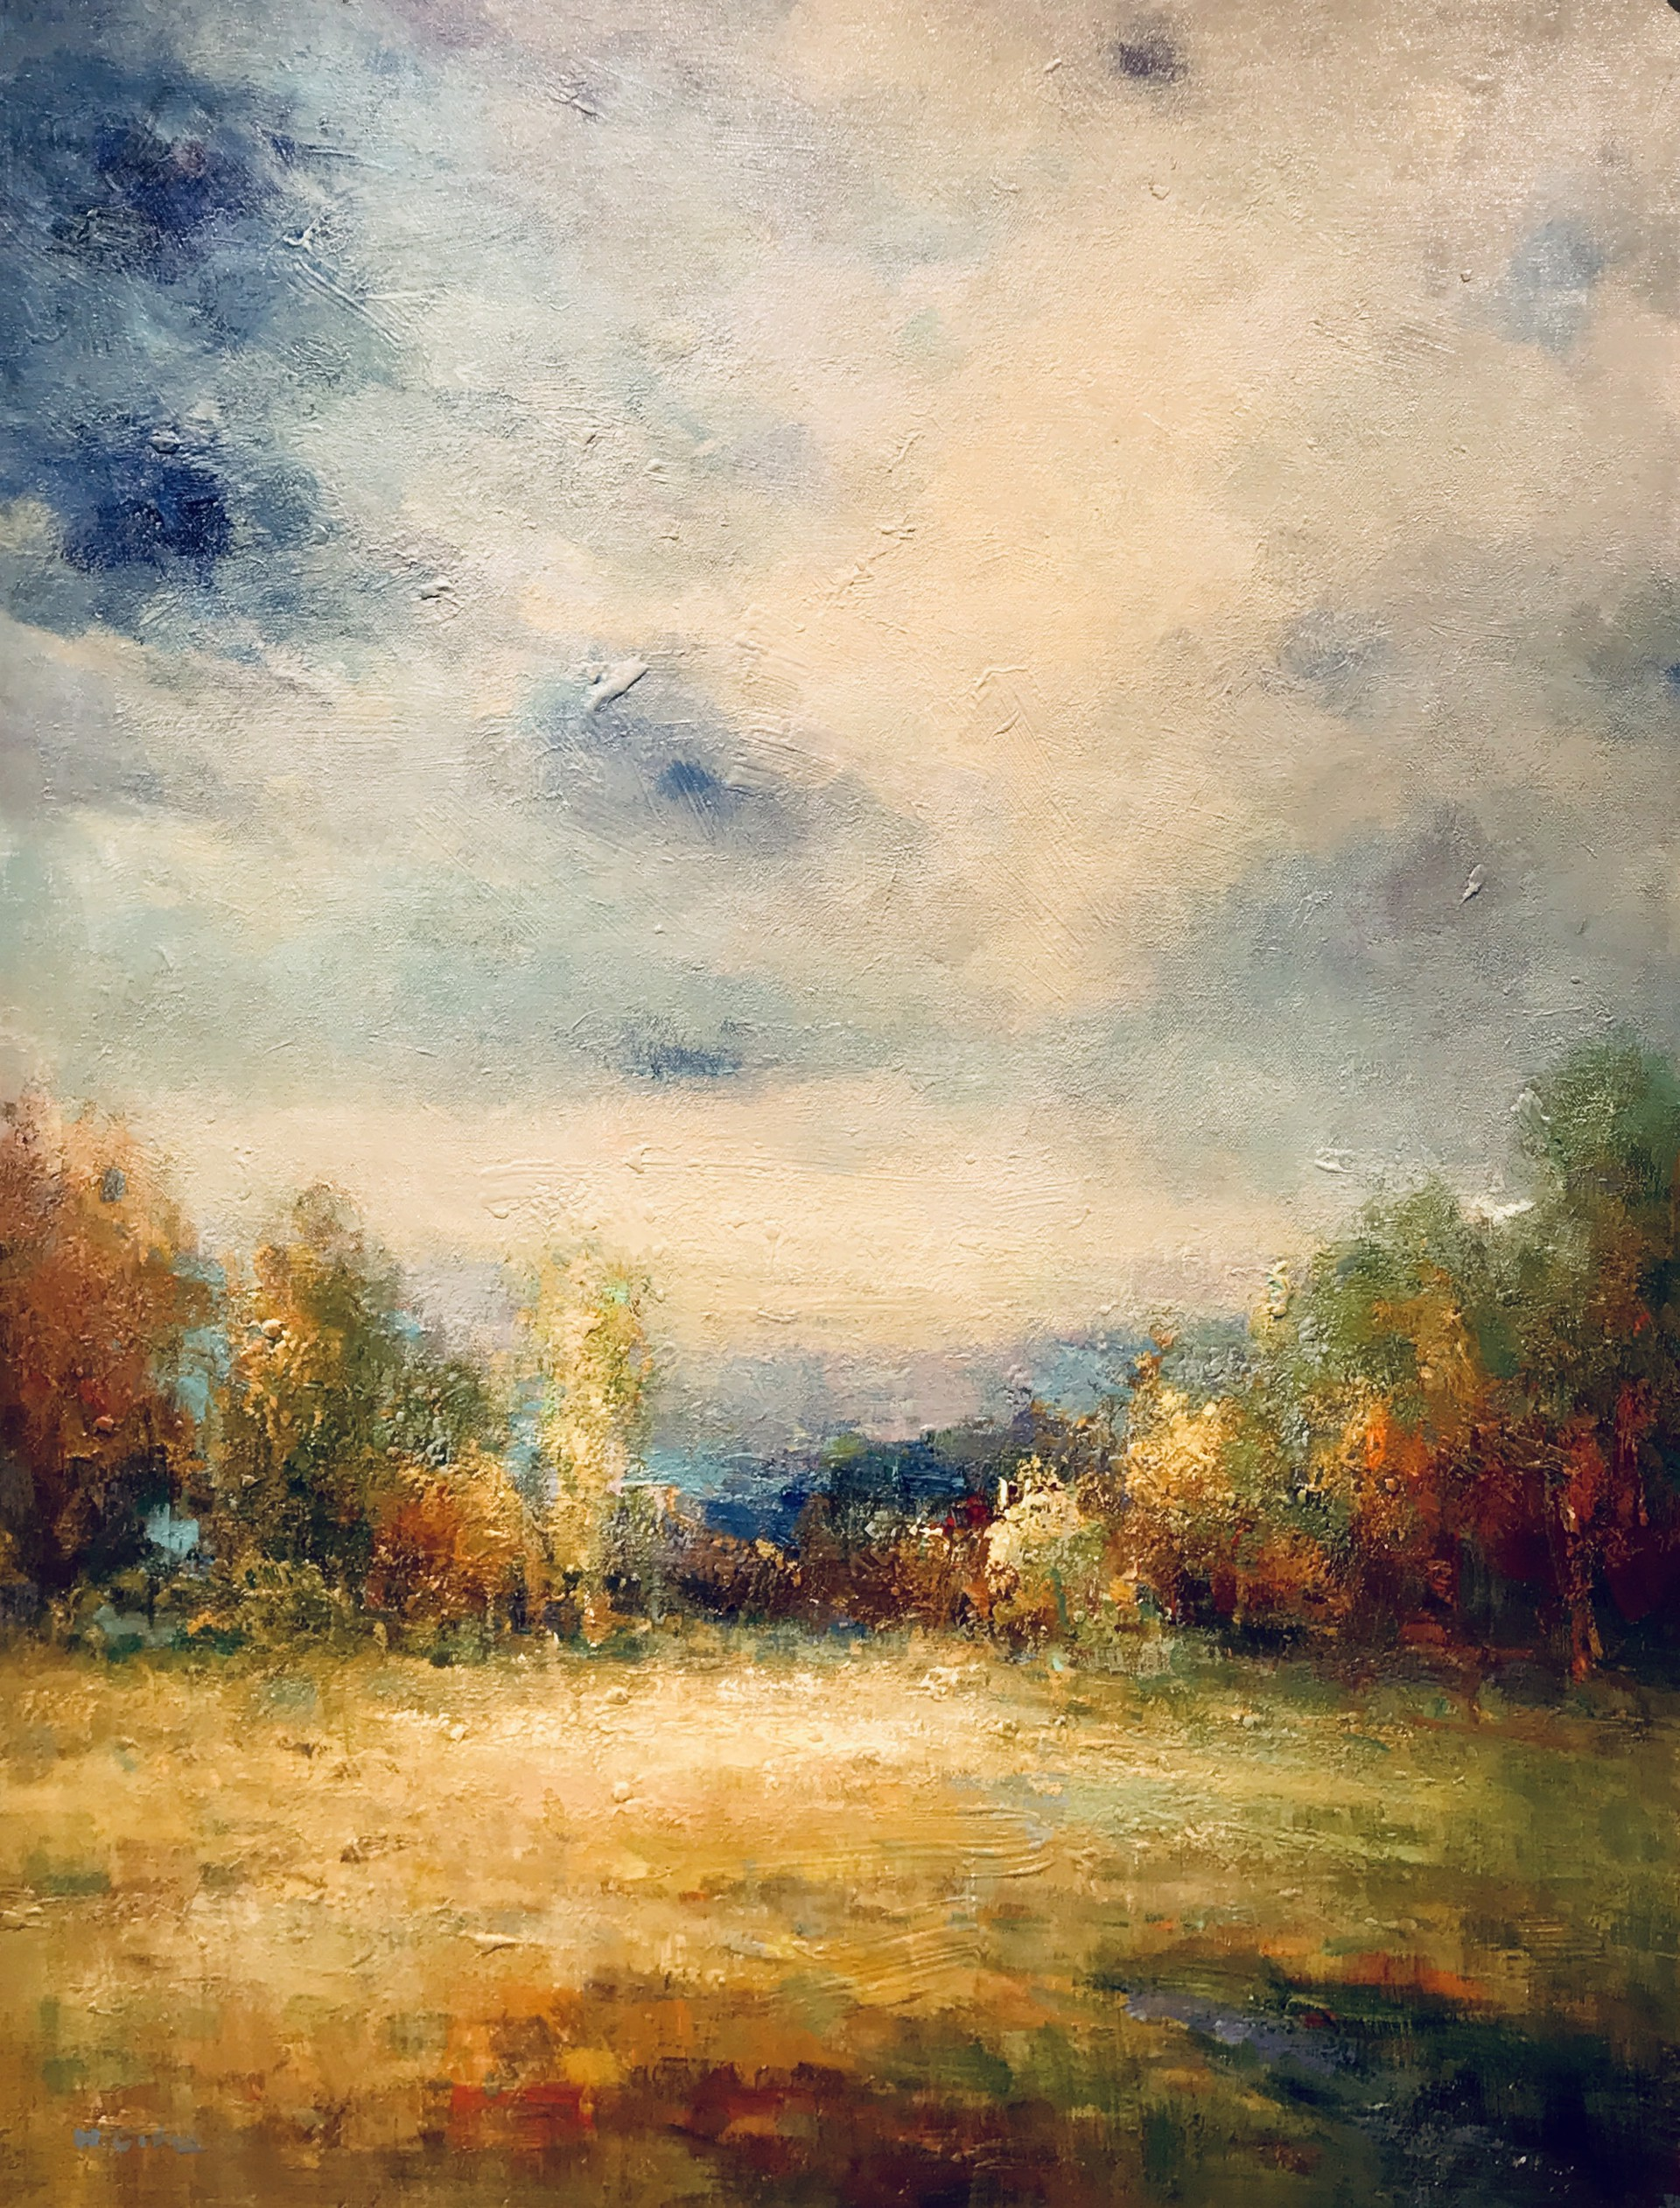 BLUE SKIES ON A FALL DAY by VARIOUS WORKS